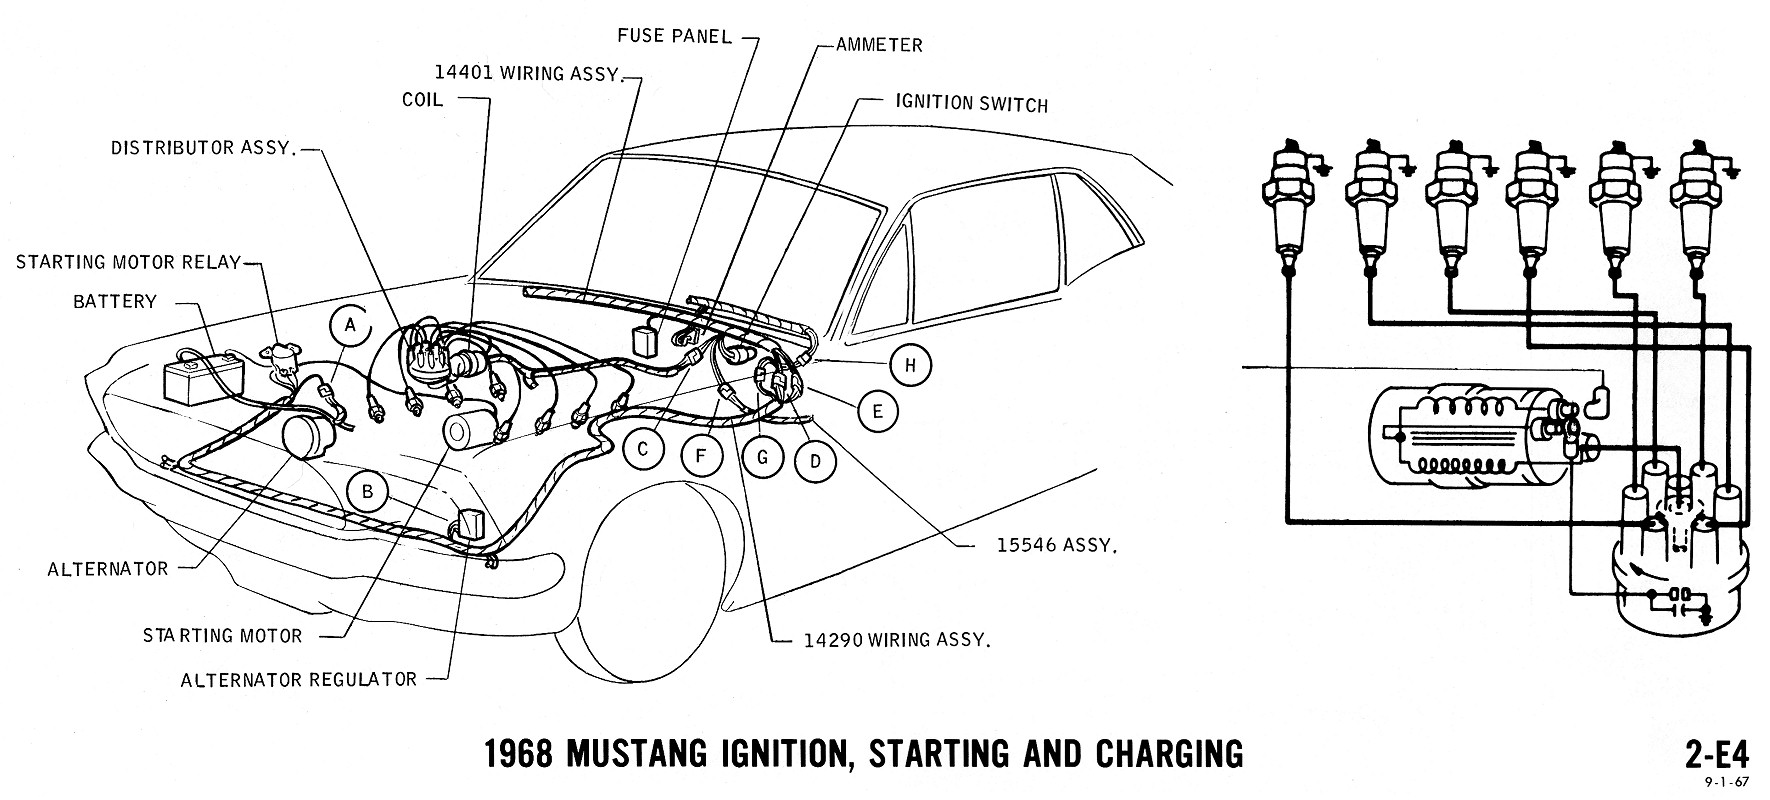 1968 mustang wiring diagram ignition starting charging 2 1968 mustang wiring diagrams and vacuum schematics average joe 1965 ford mustang wiring diagrams at gsmportal.co